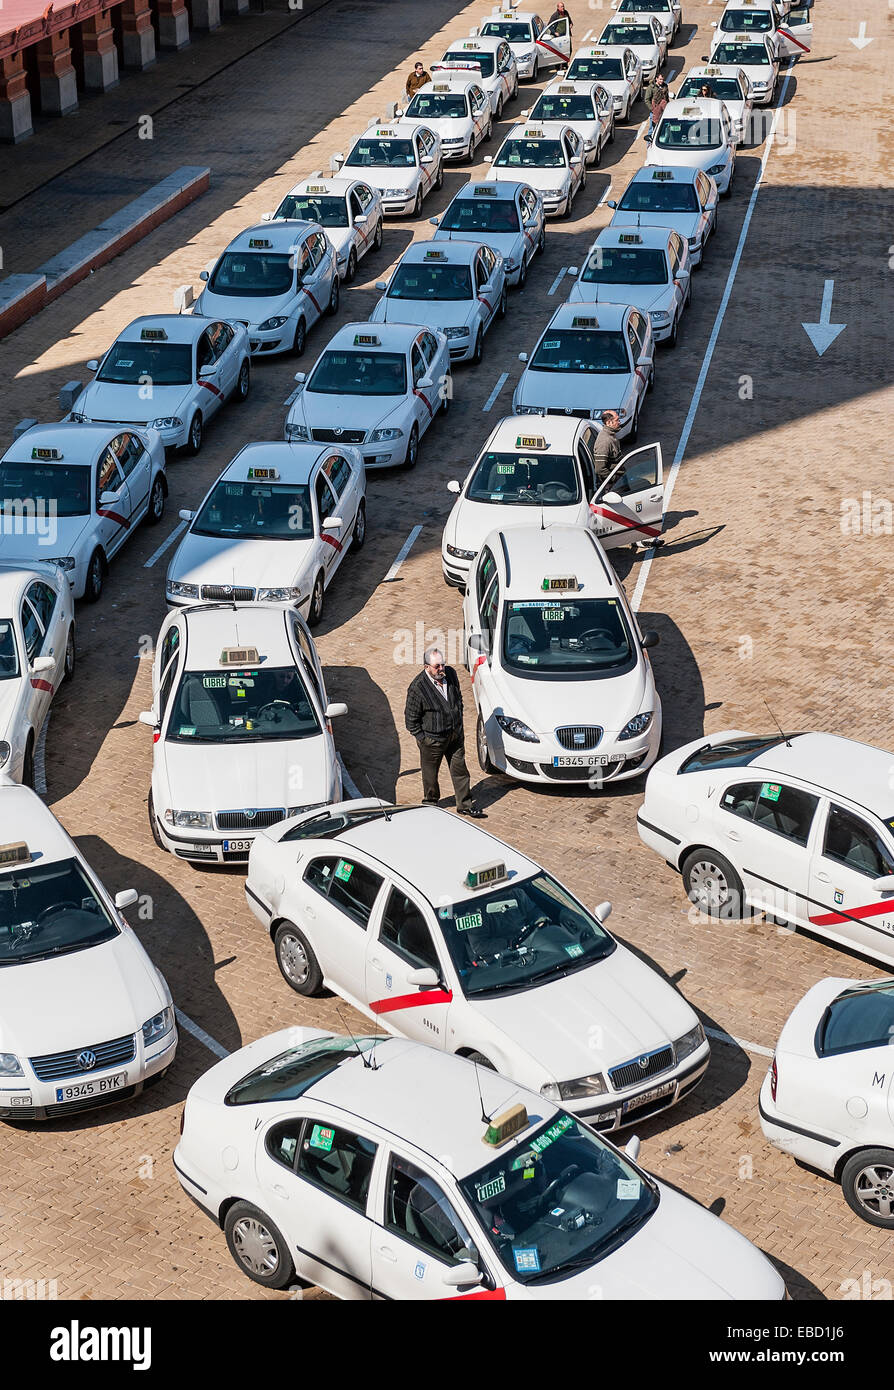 Taxi cabs await passangers at the Madrid Atocha train station, Madrid, Spain - Stock Image